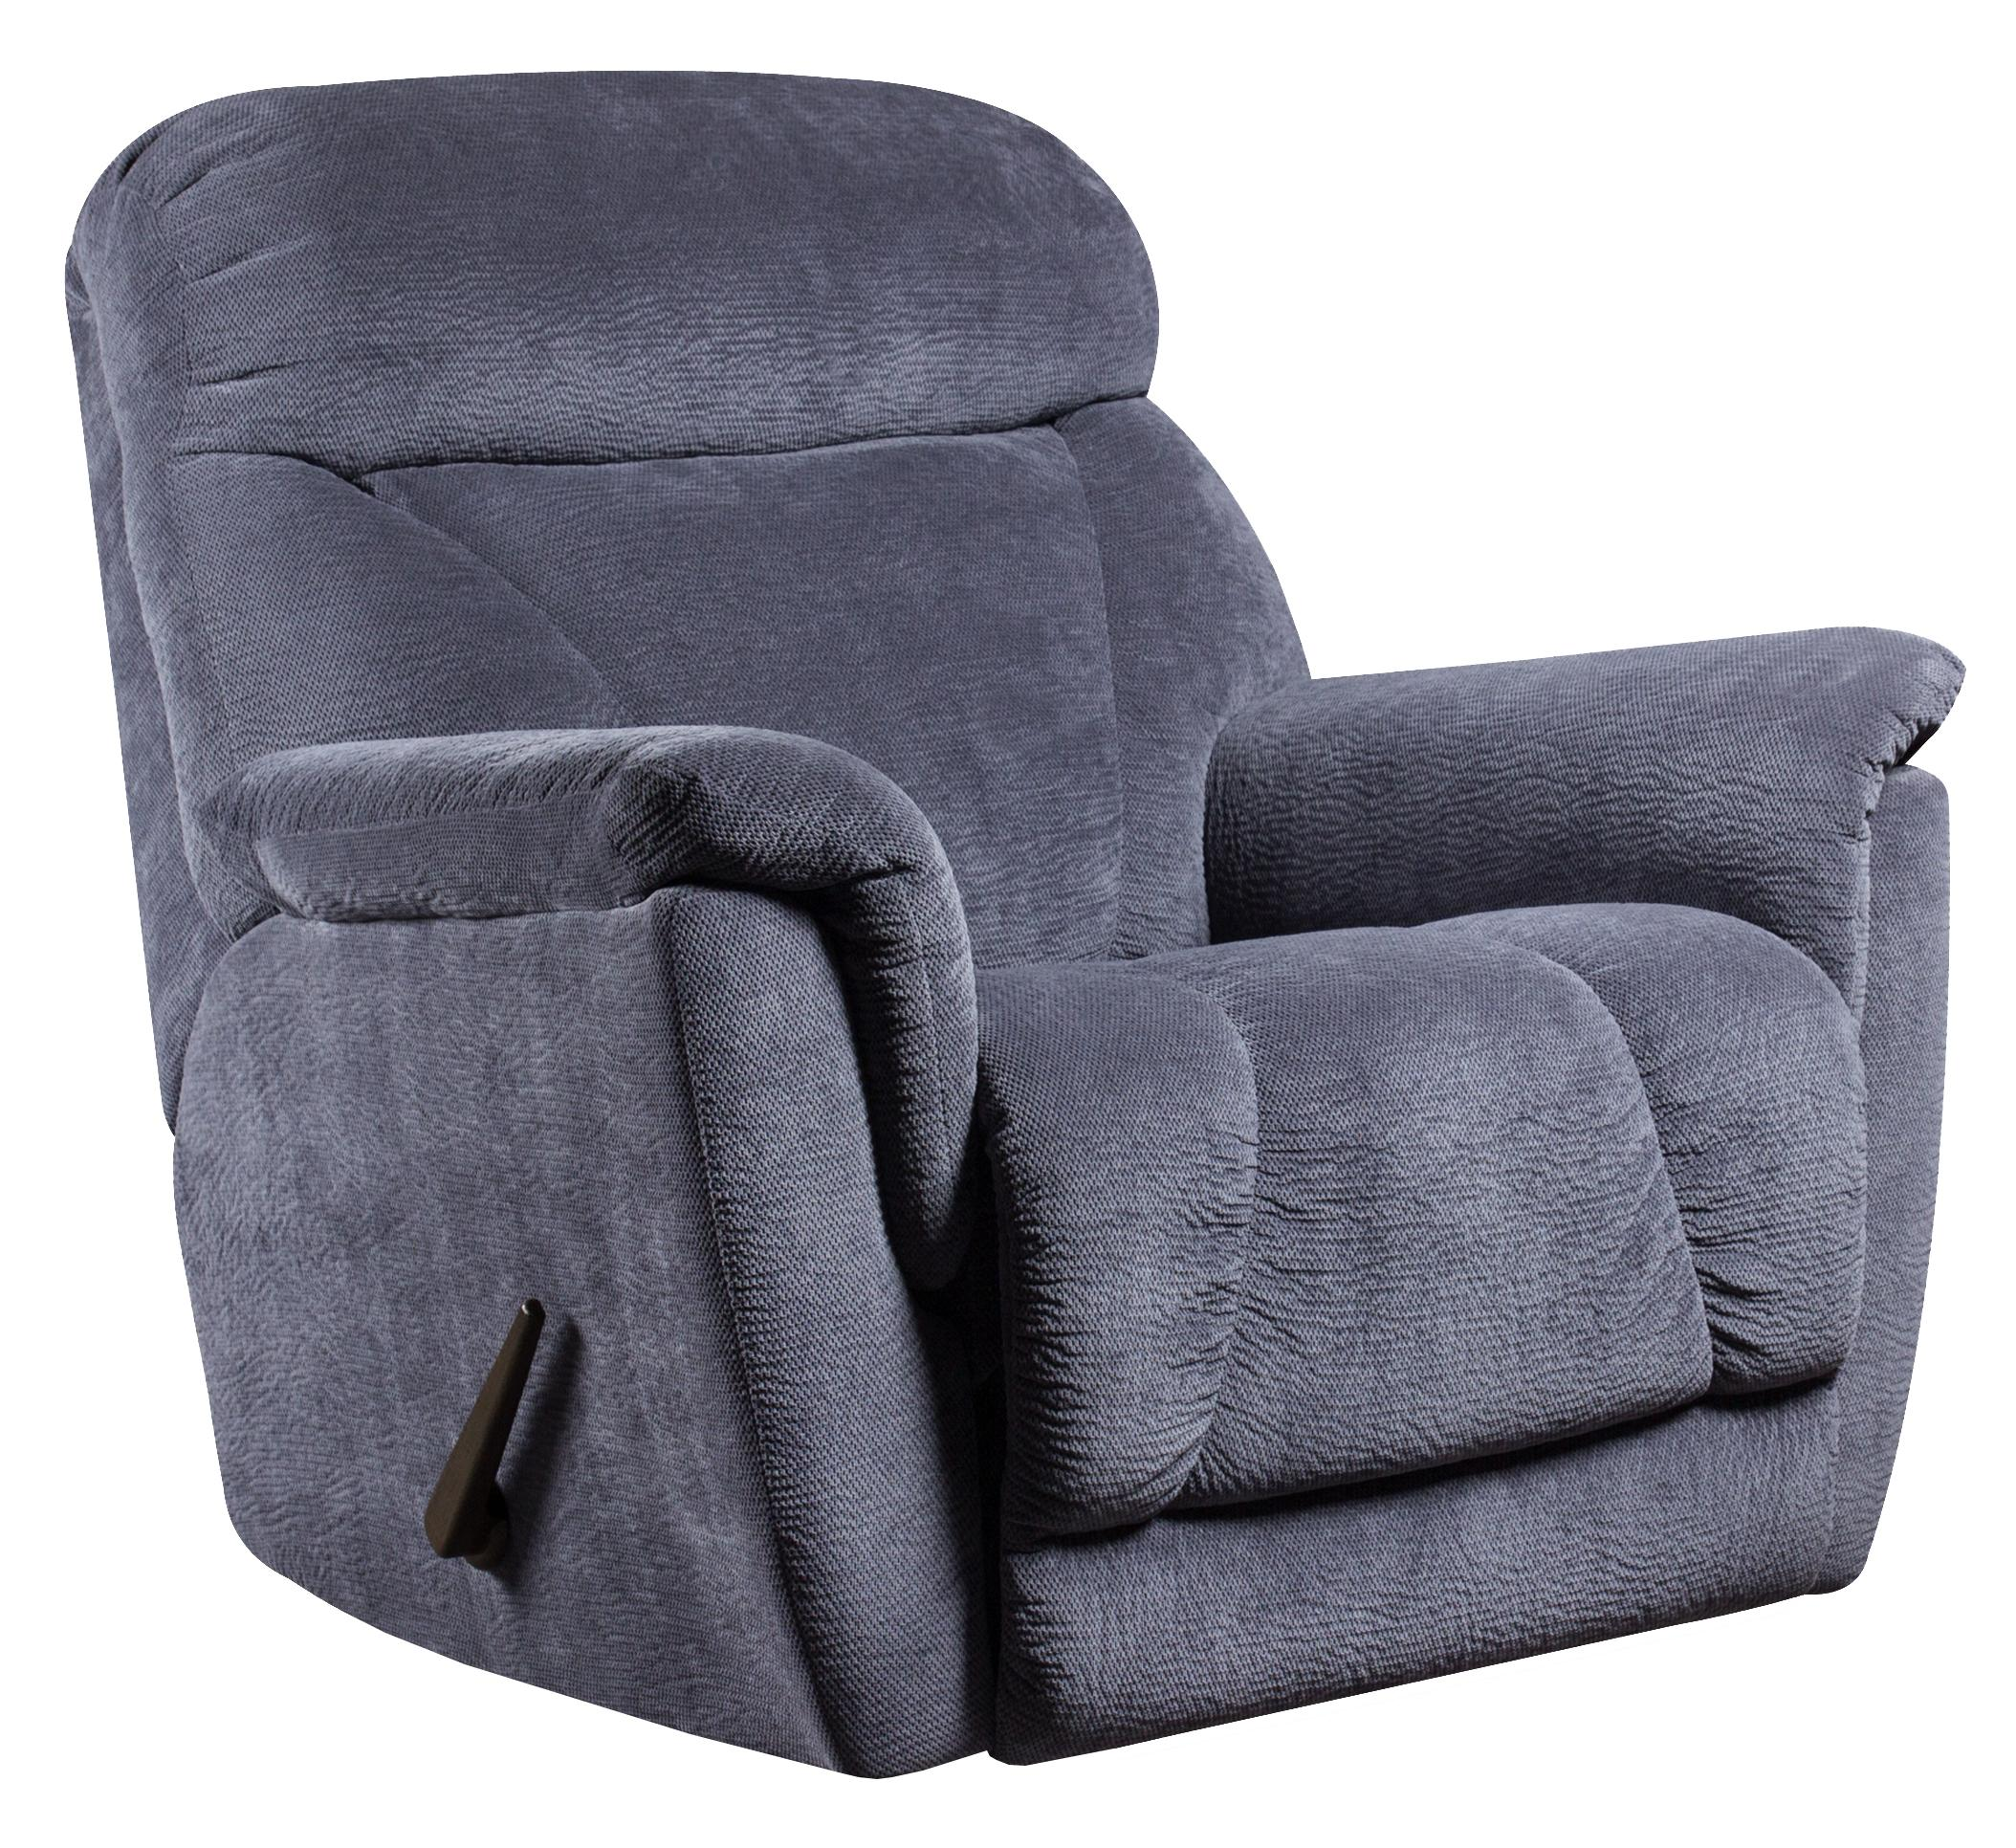 Southern motion recliners flair rocker recliner with casual contemporary style h l stephens - Stylish rocker recliner ...